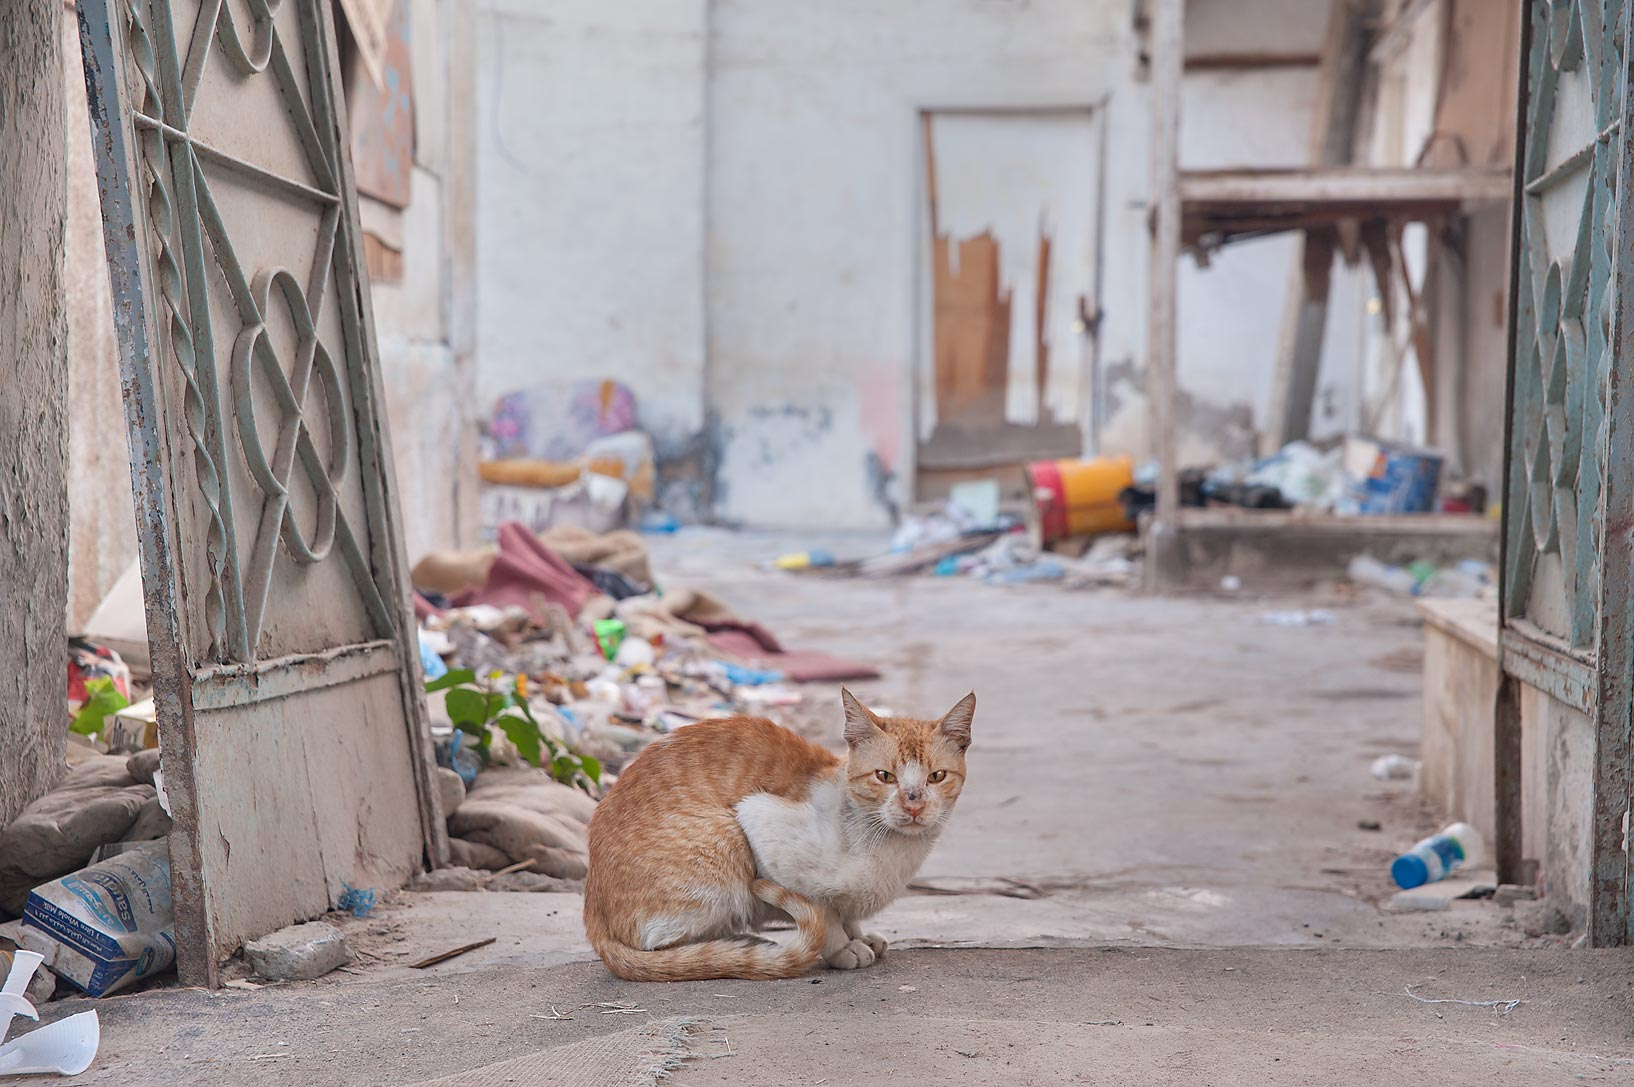 Street cat sitting in doorway in Musheirib area. Doha, Qatar